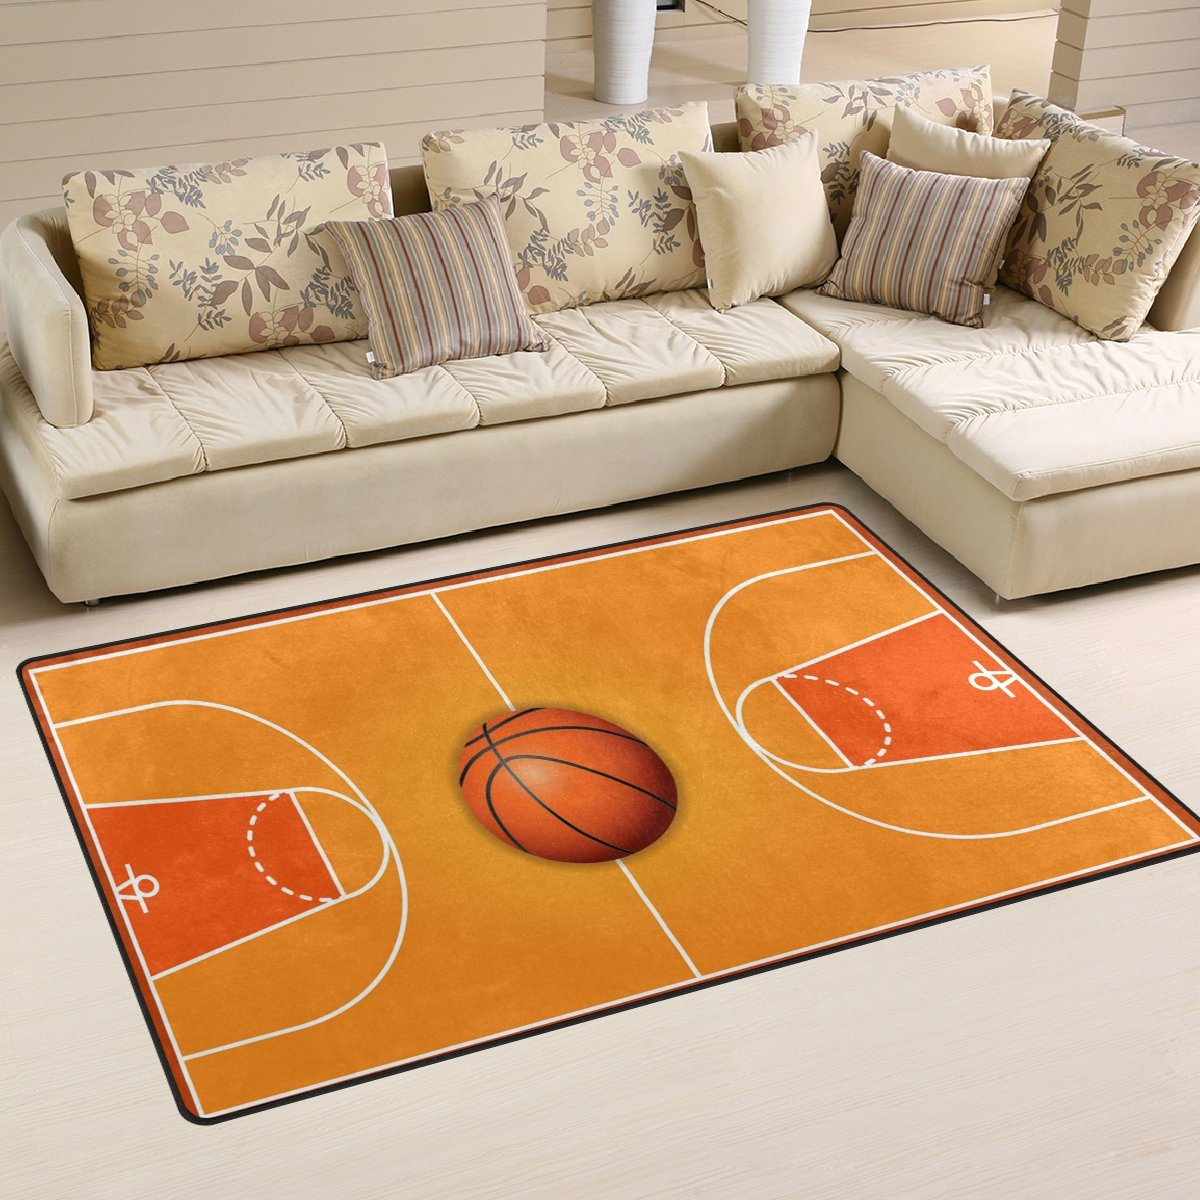 WOZO Basketball Wooden Court Area Rug Rugs Non-Slip Floor Mat Doormats Living Room Bedroom 31 x 20 inches g2106597p146c161s240